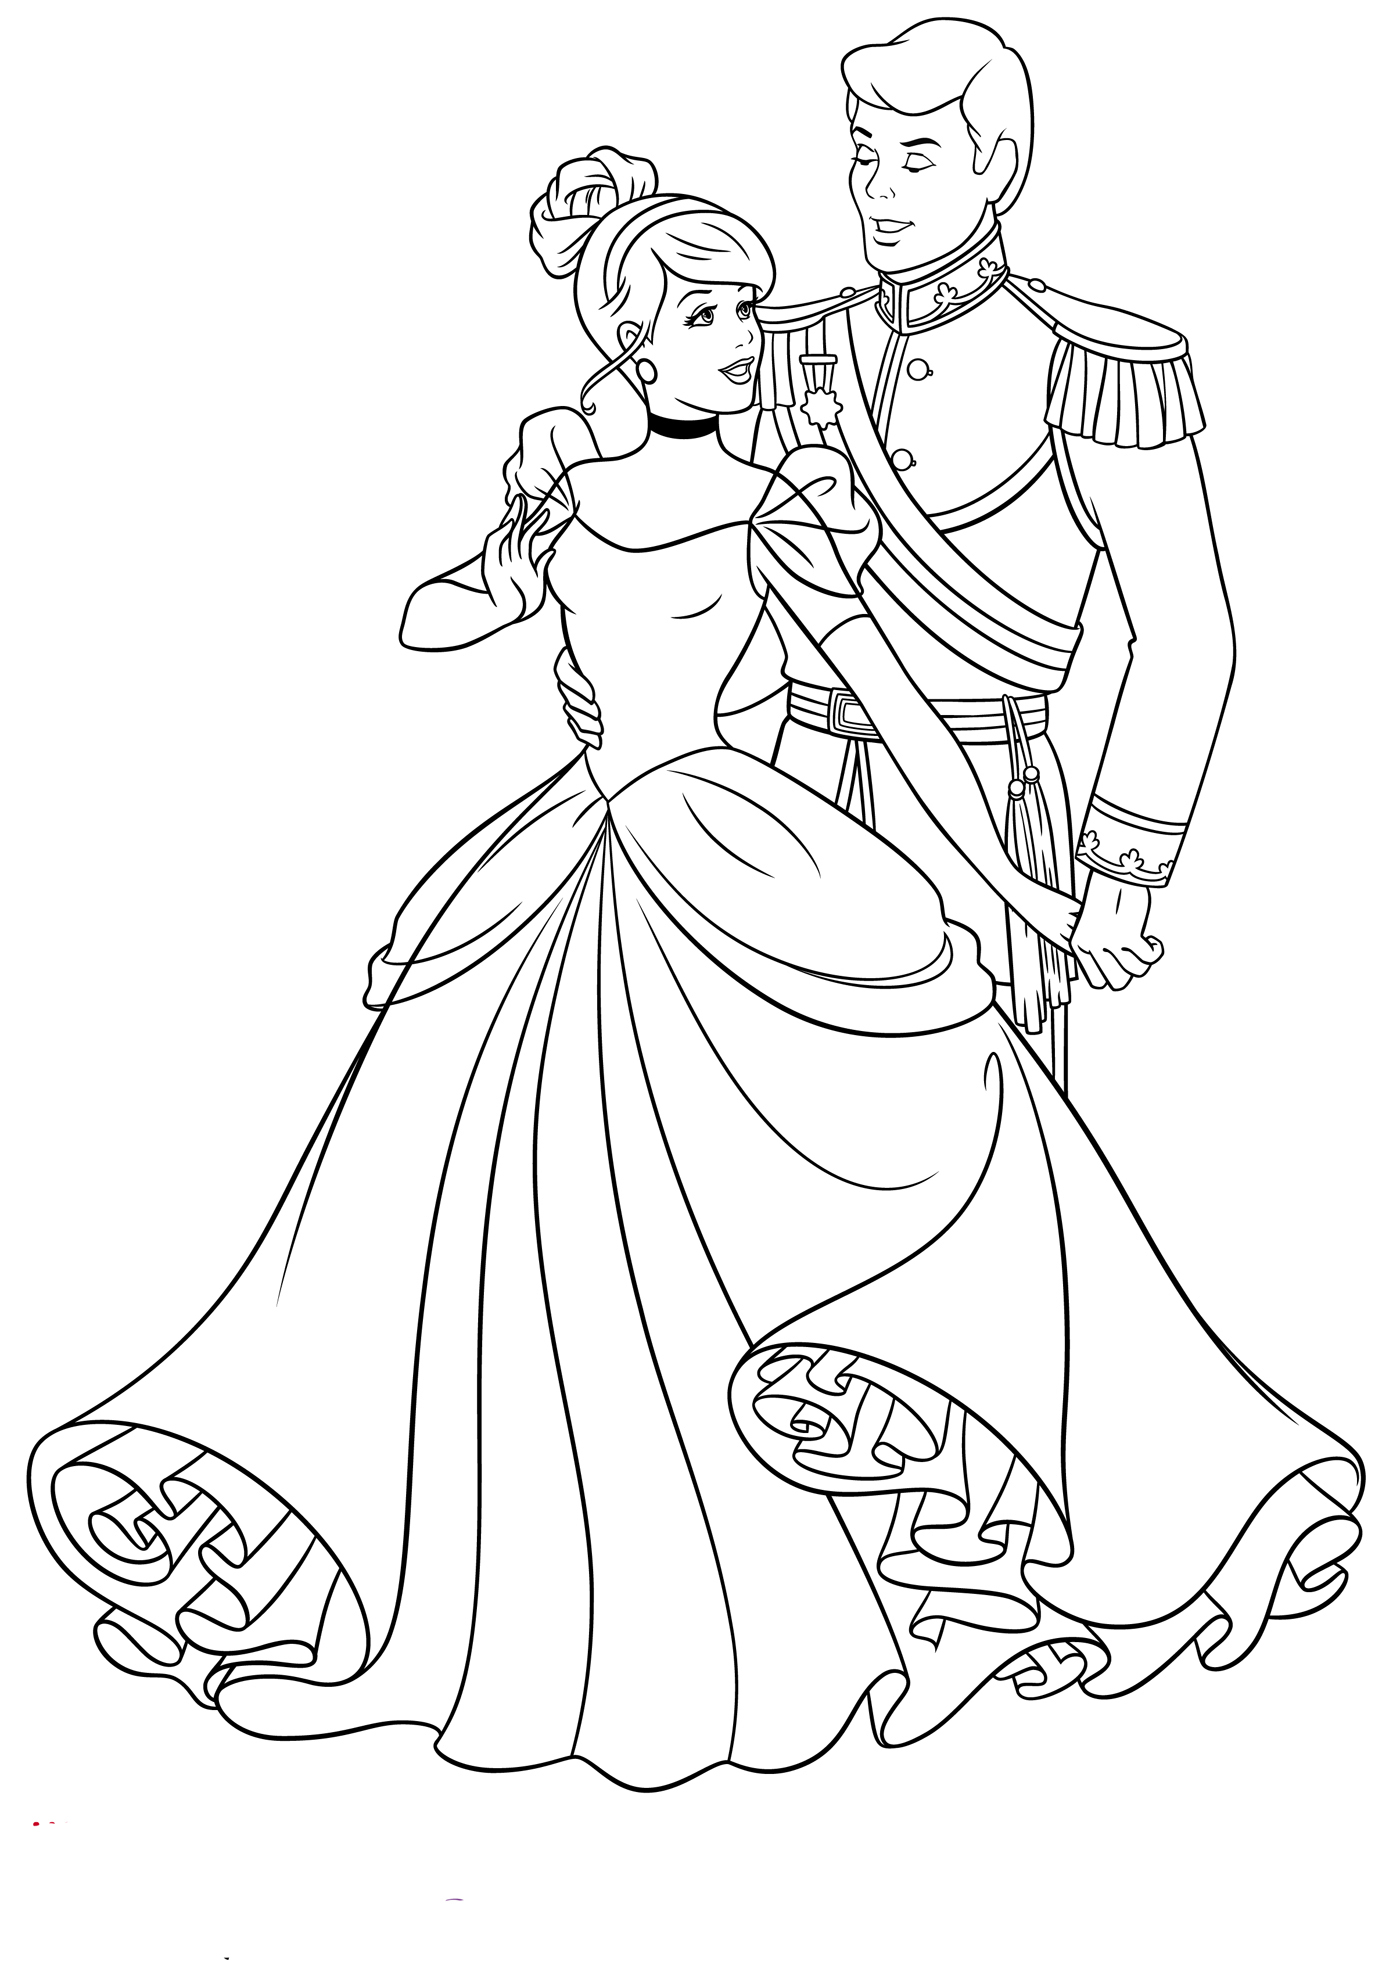 cinderella coloring pages to print get this disney princess cinderella coloring pages coloring to print cinderella pages